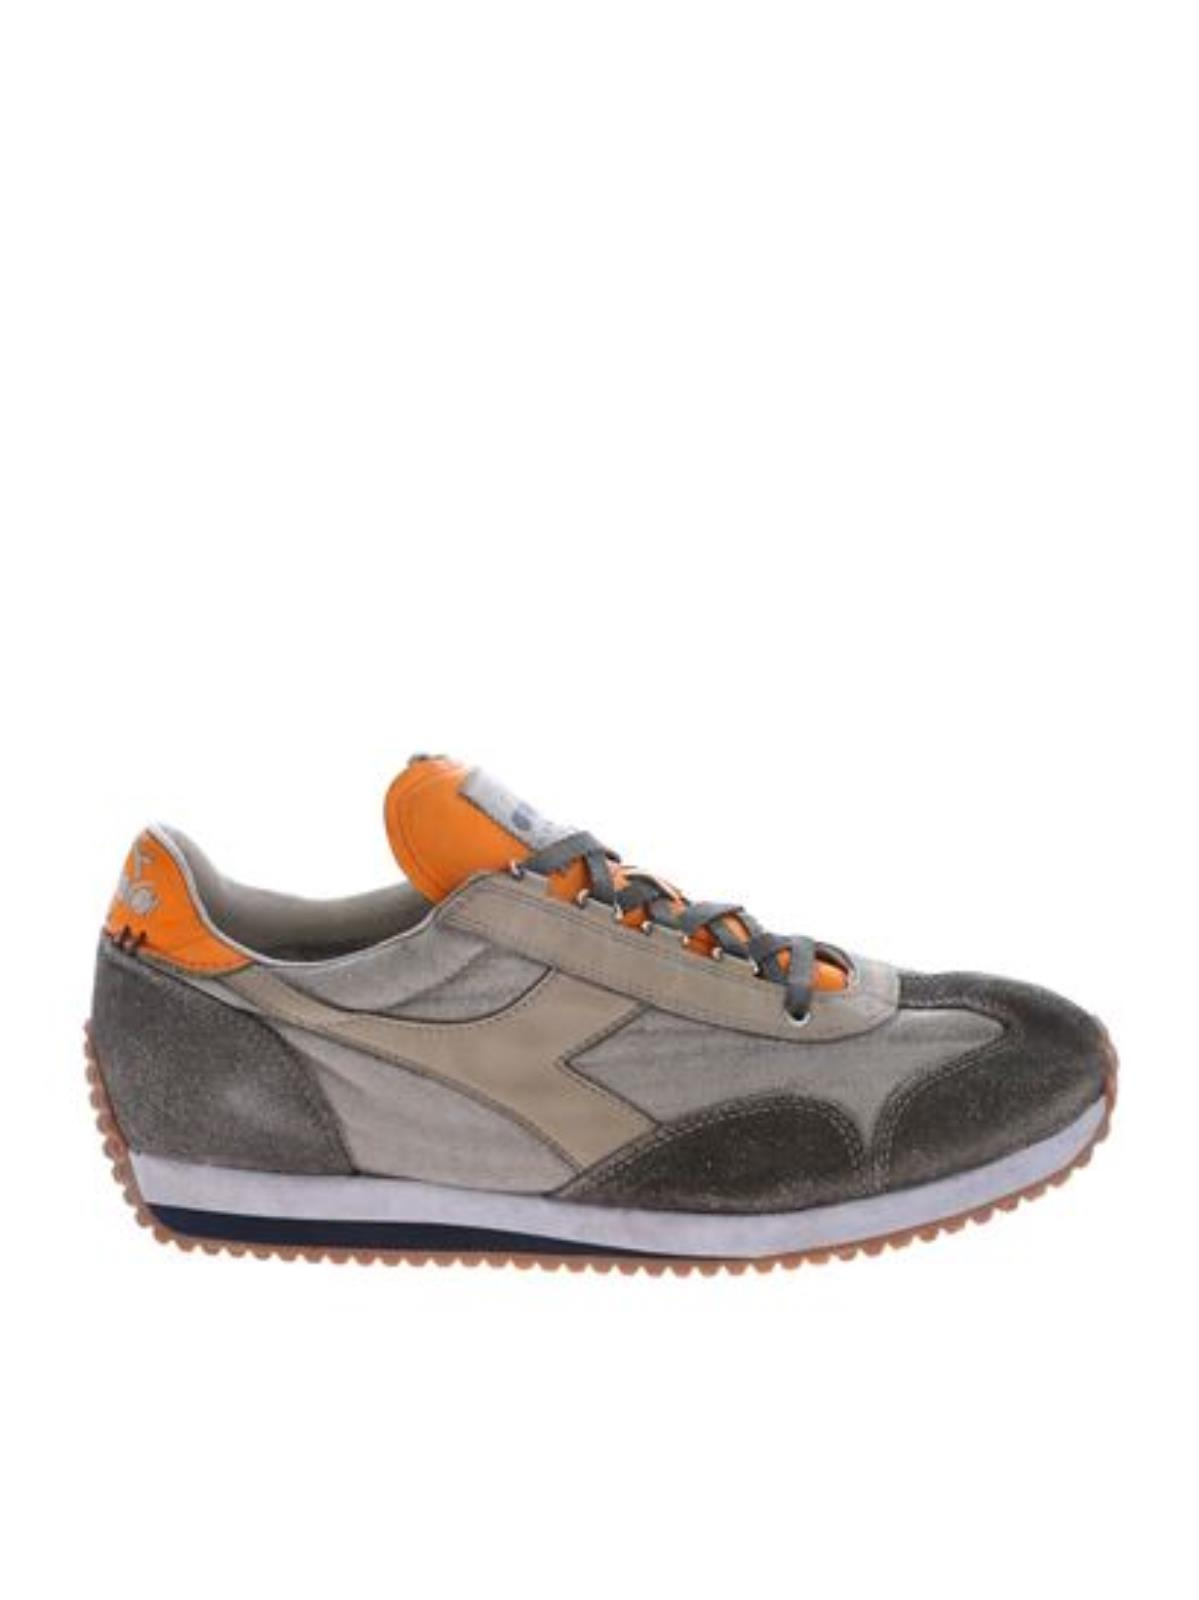 best service 741f0 16a85 Sneakers Diadora Heritage